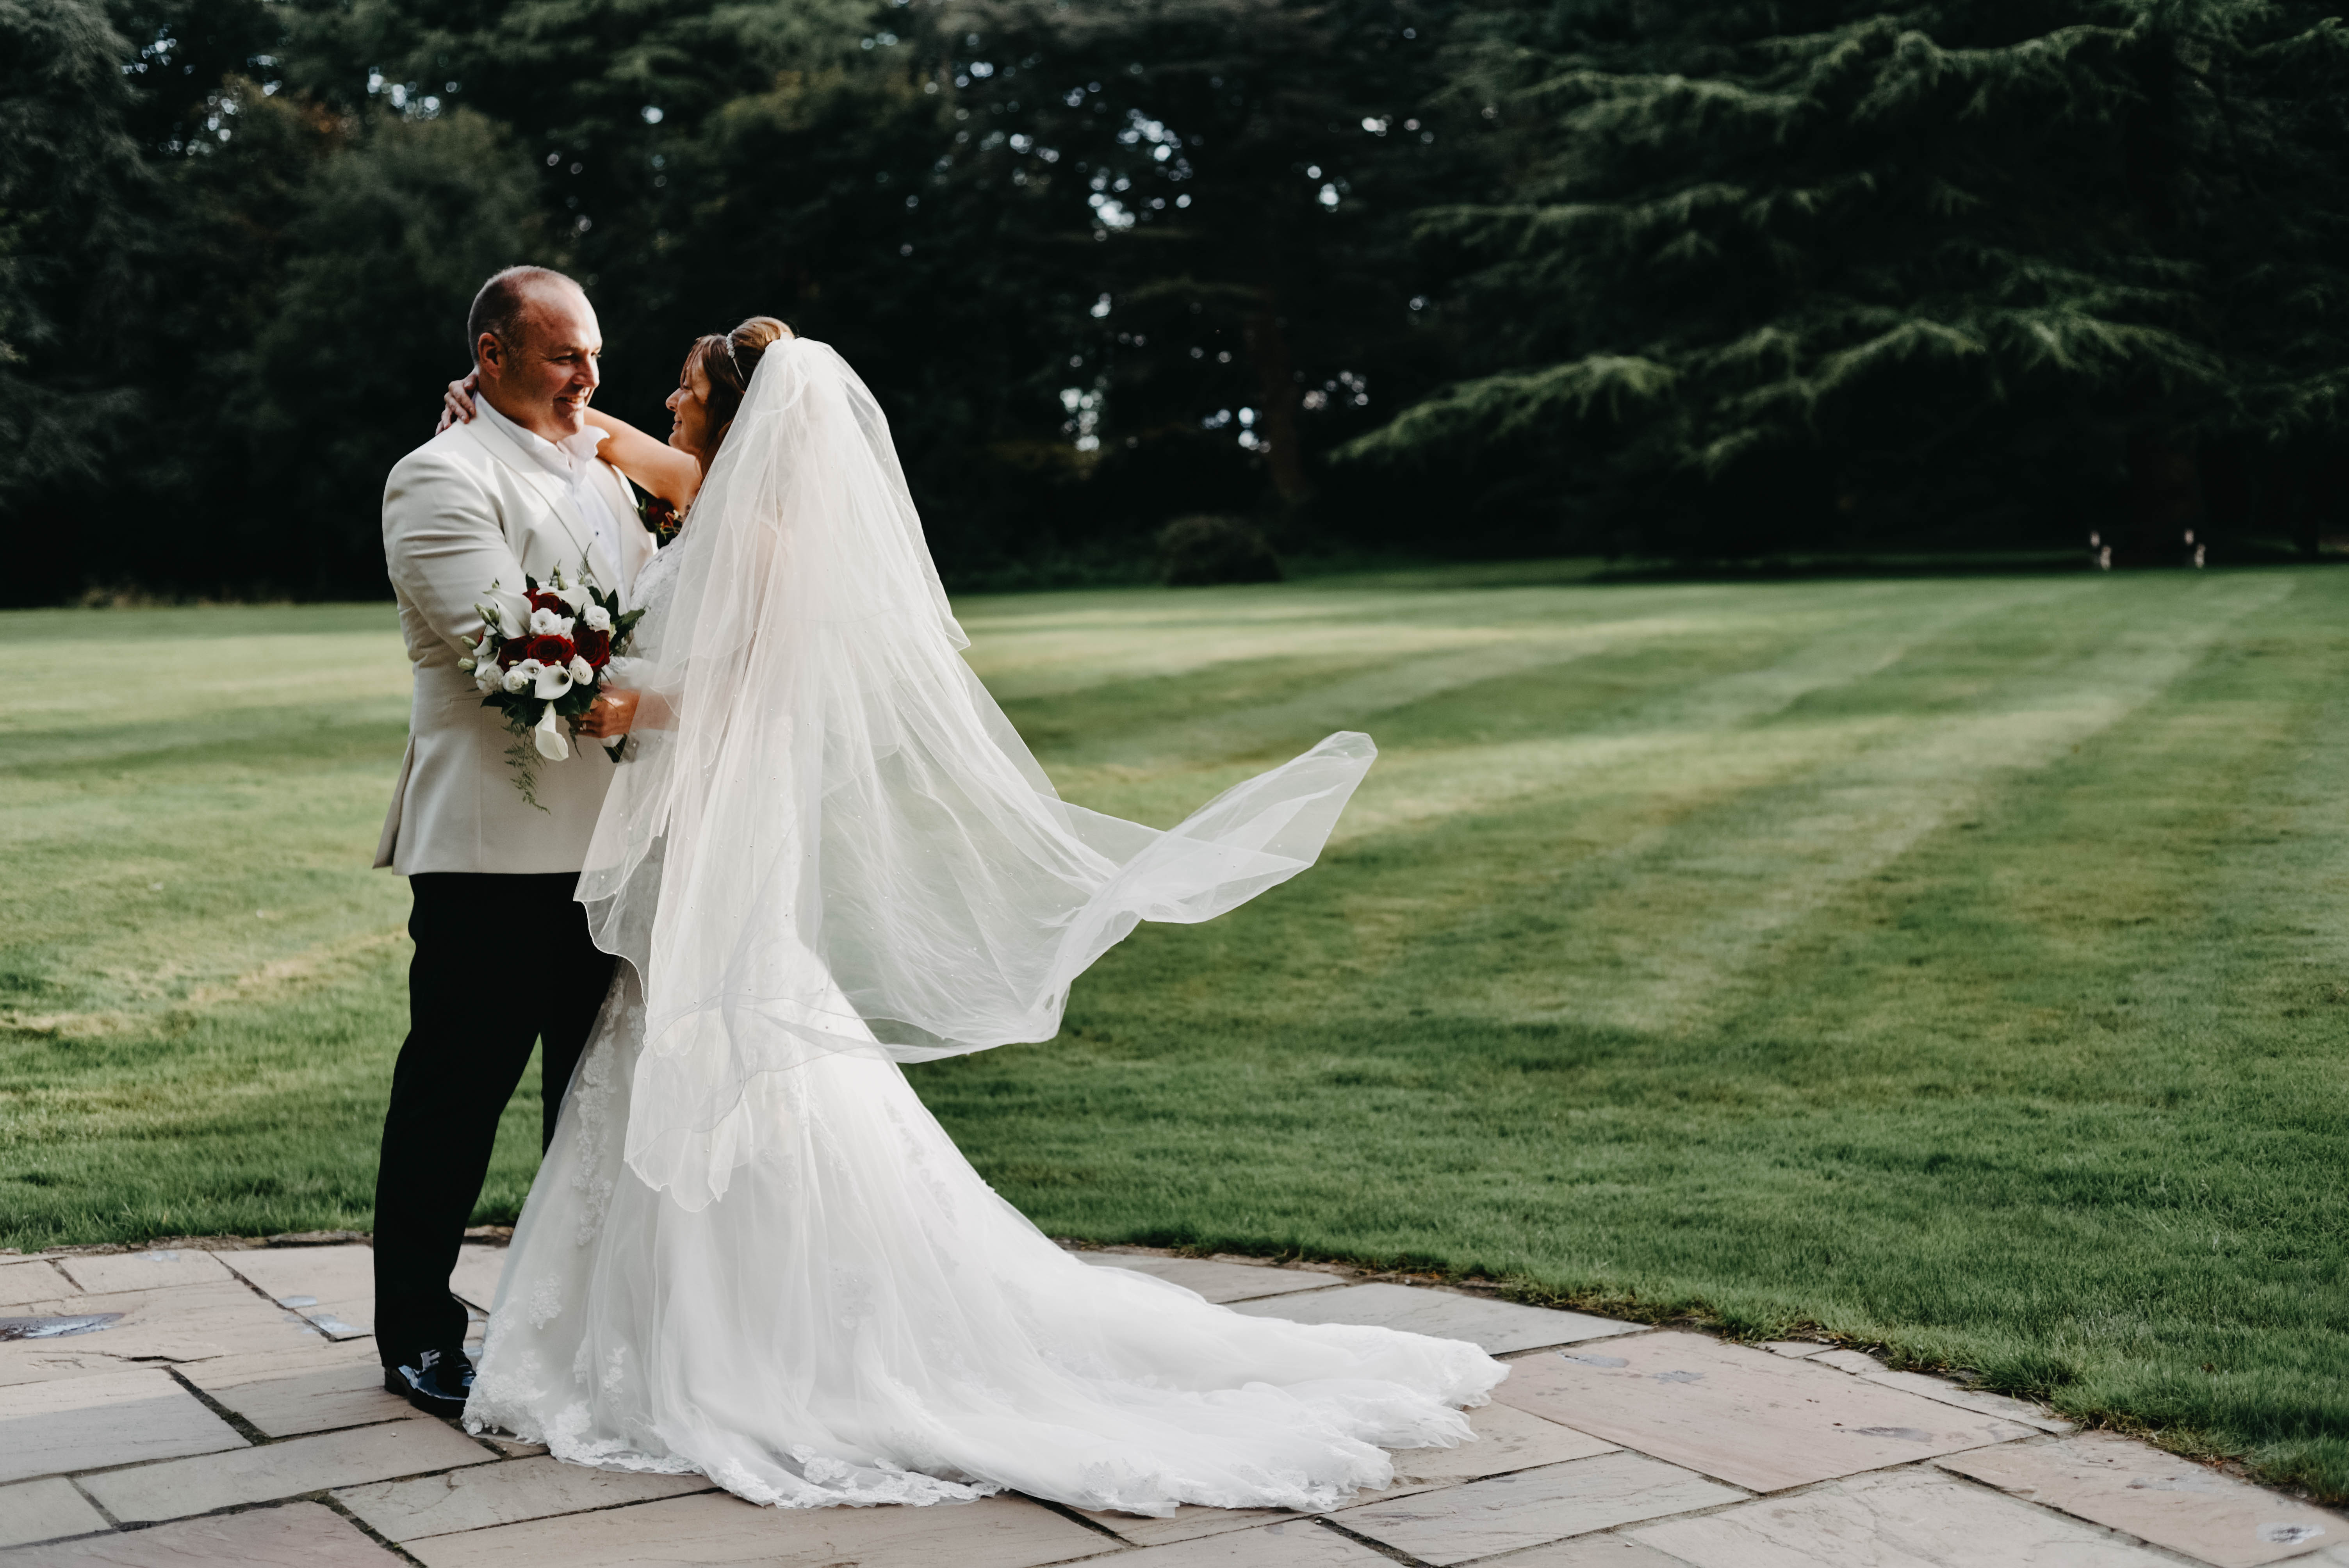 bride and groom standing on a lawn